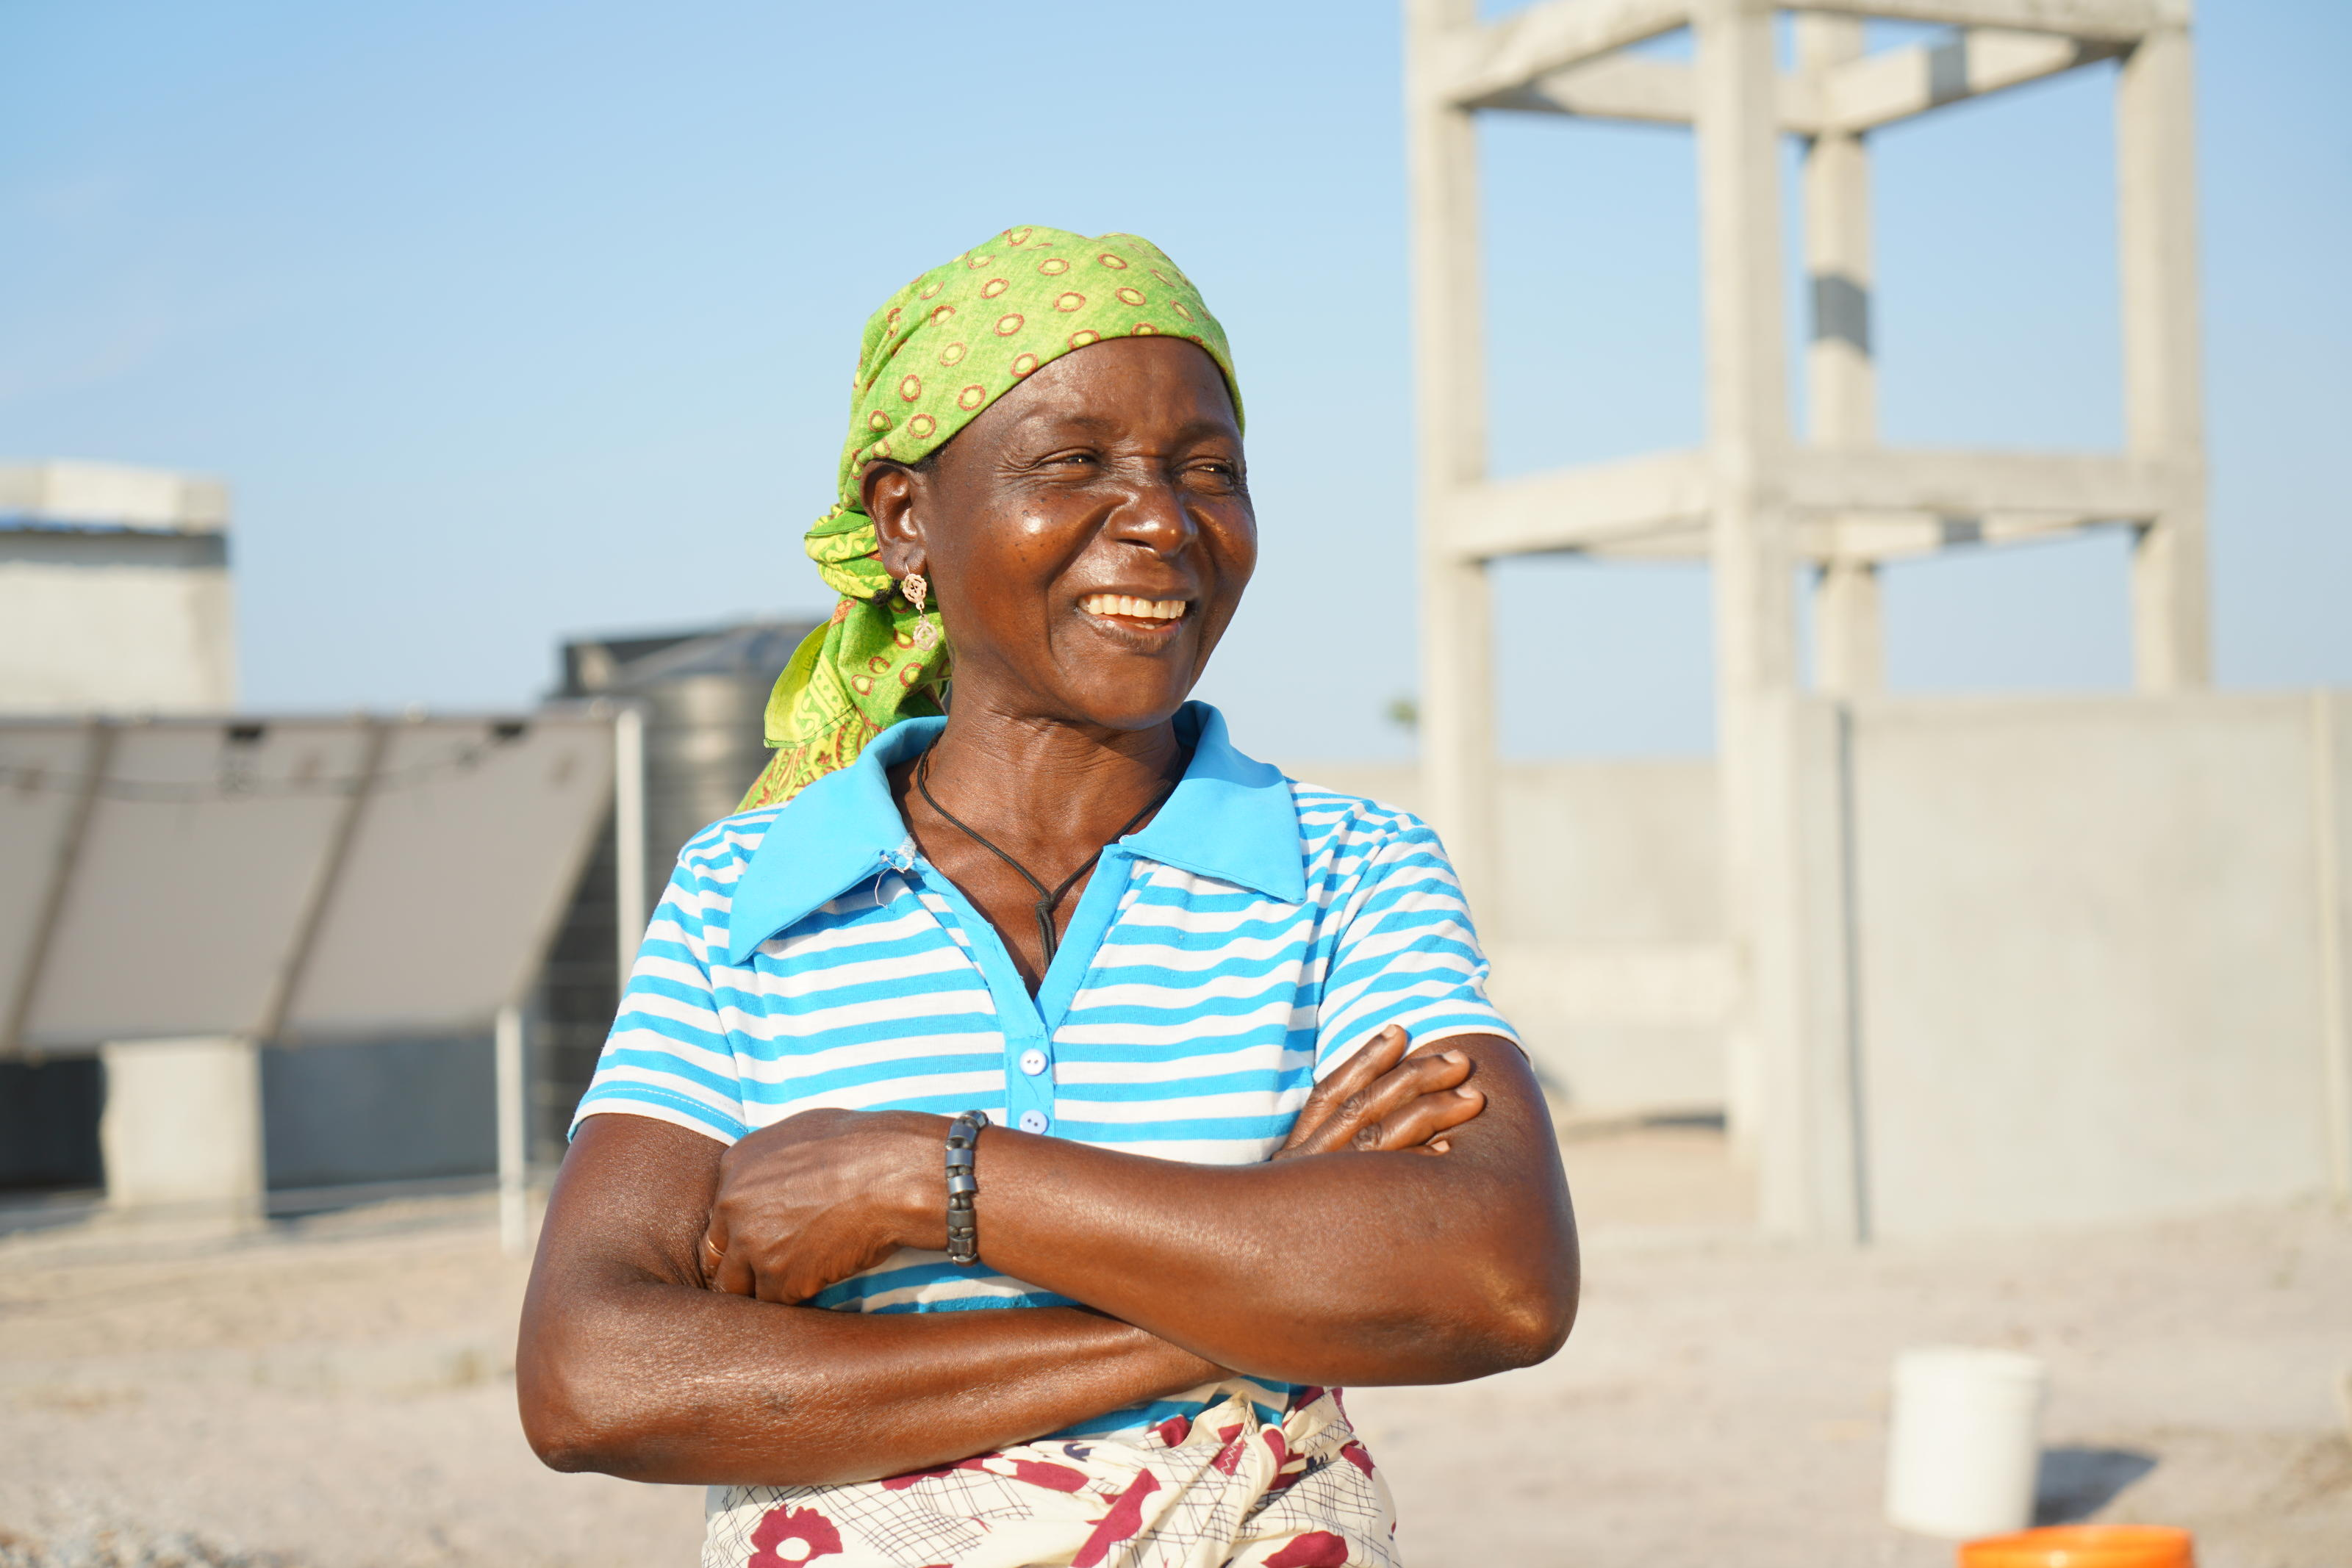 Molia Abdallah, 47, in front of a solar powered water scheme being constructed in Chicoma, Mossuril District, Nampula Province, Mozambique, October 2018.